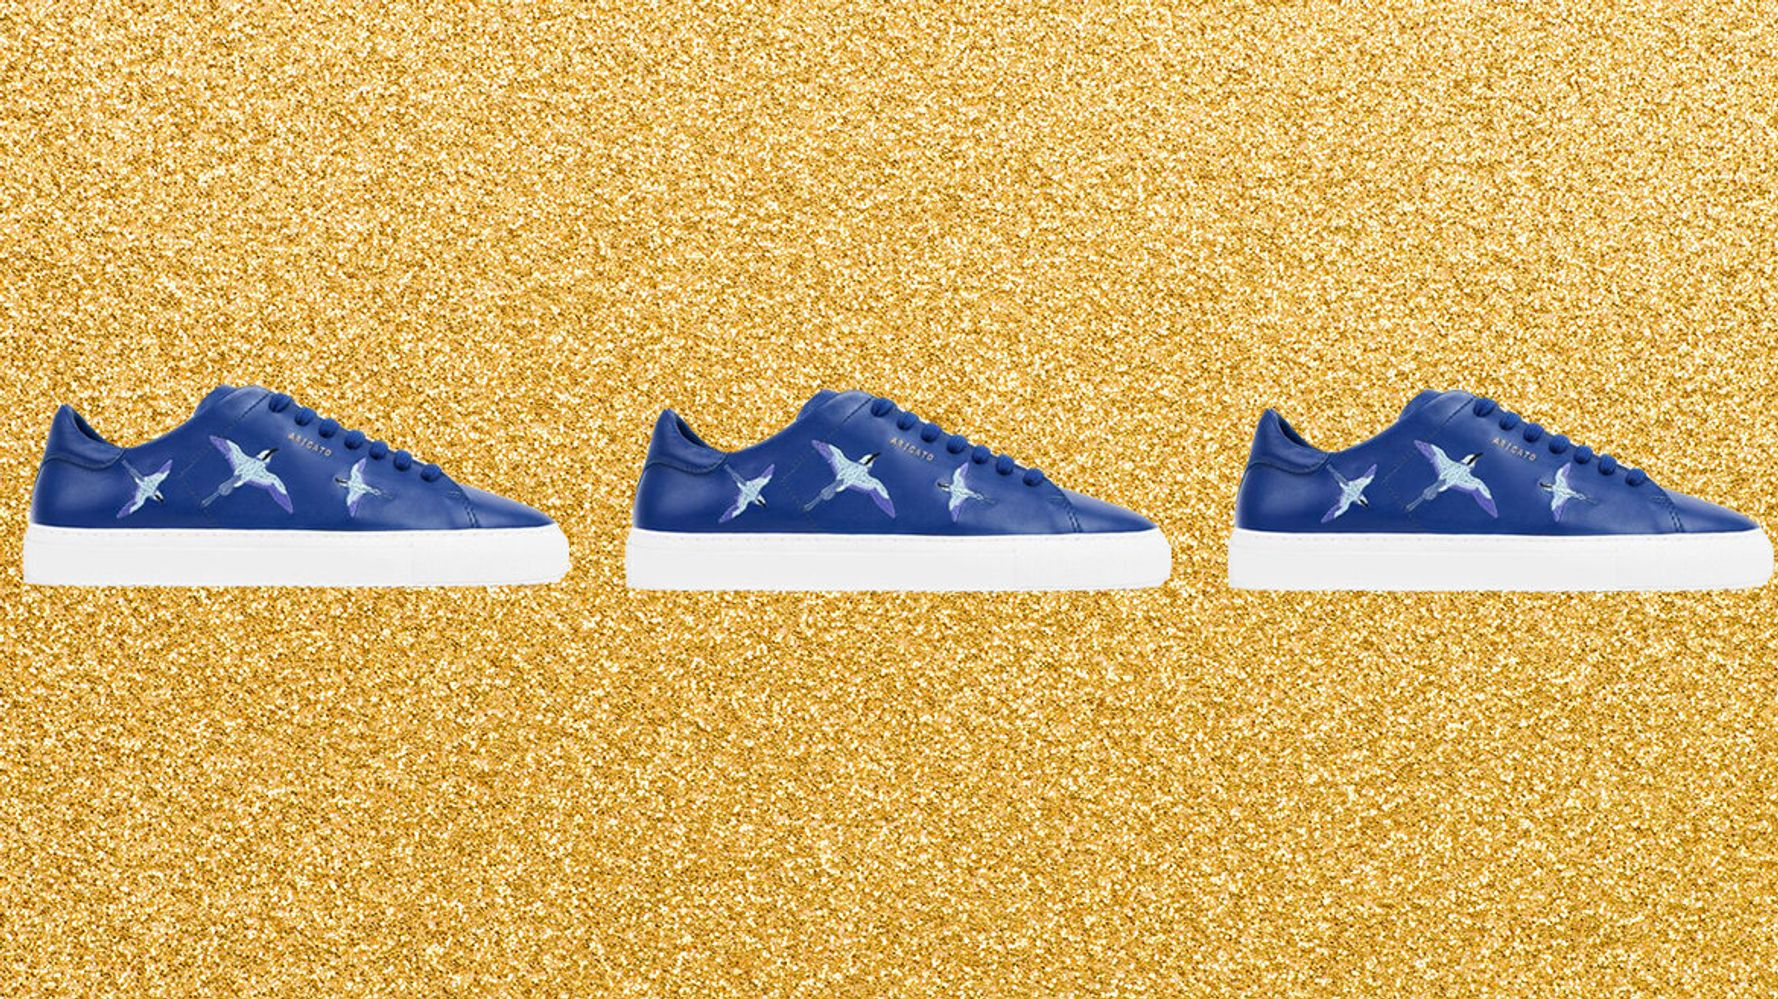 The Best Wedding Trainers For Fashionable (And Comfortable) Brides And Grooms